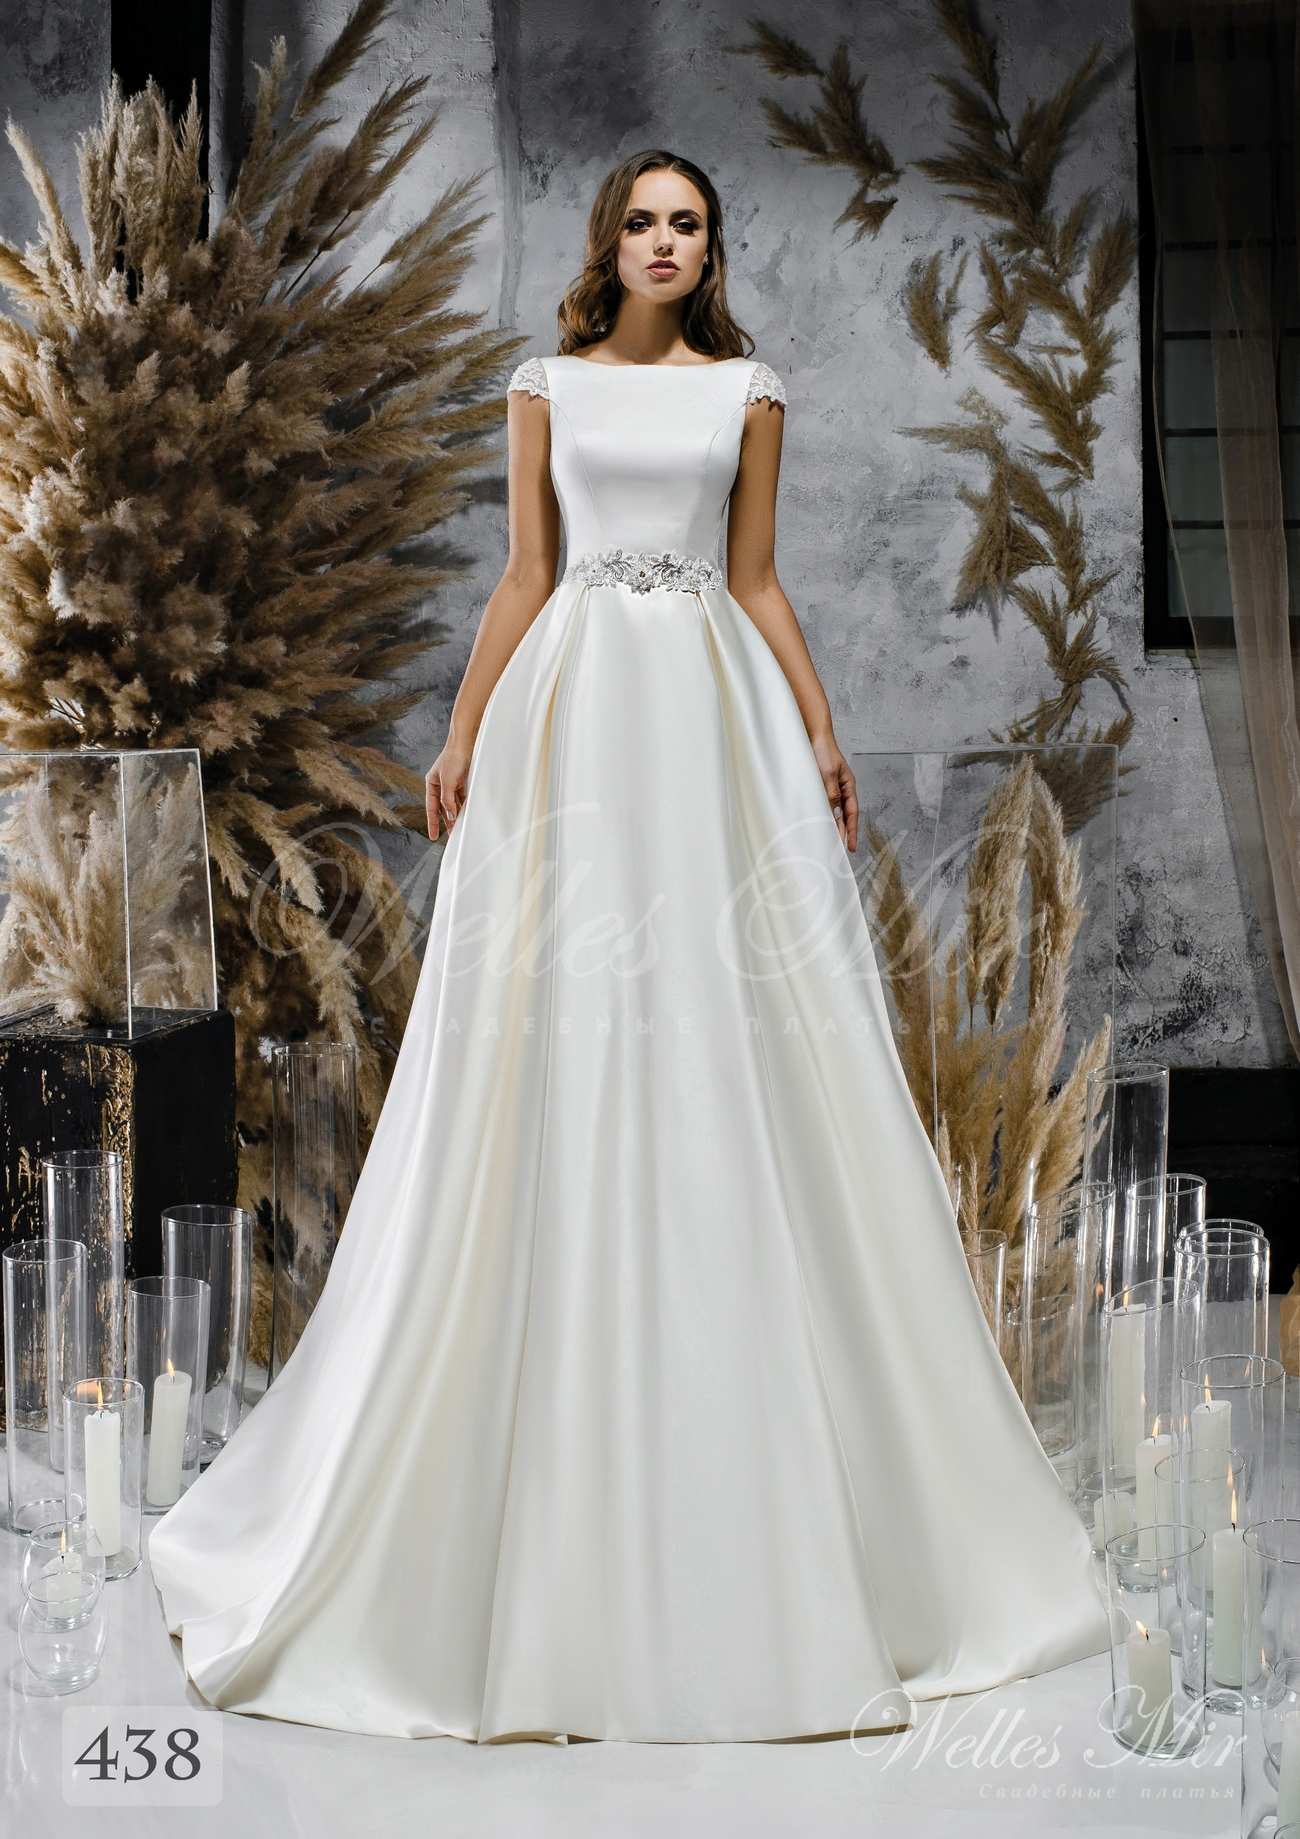 White satin wedding dress with closed neckline on wholesale